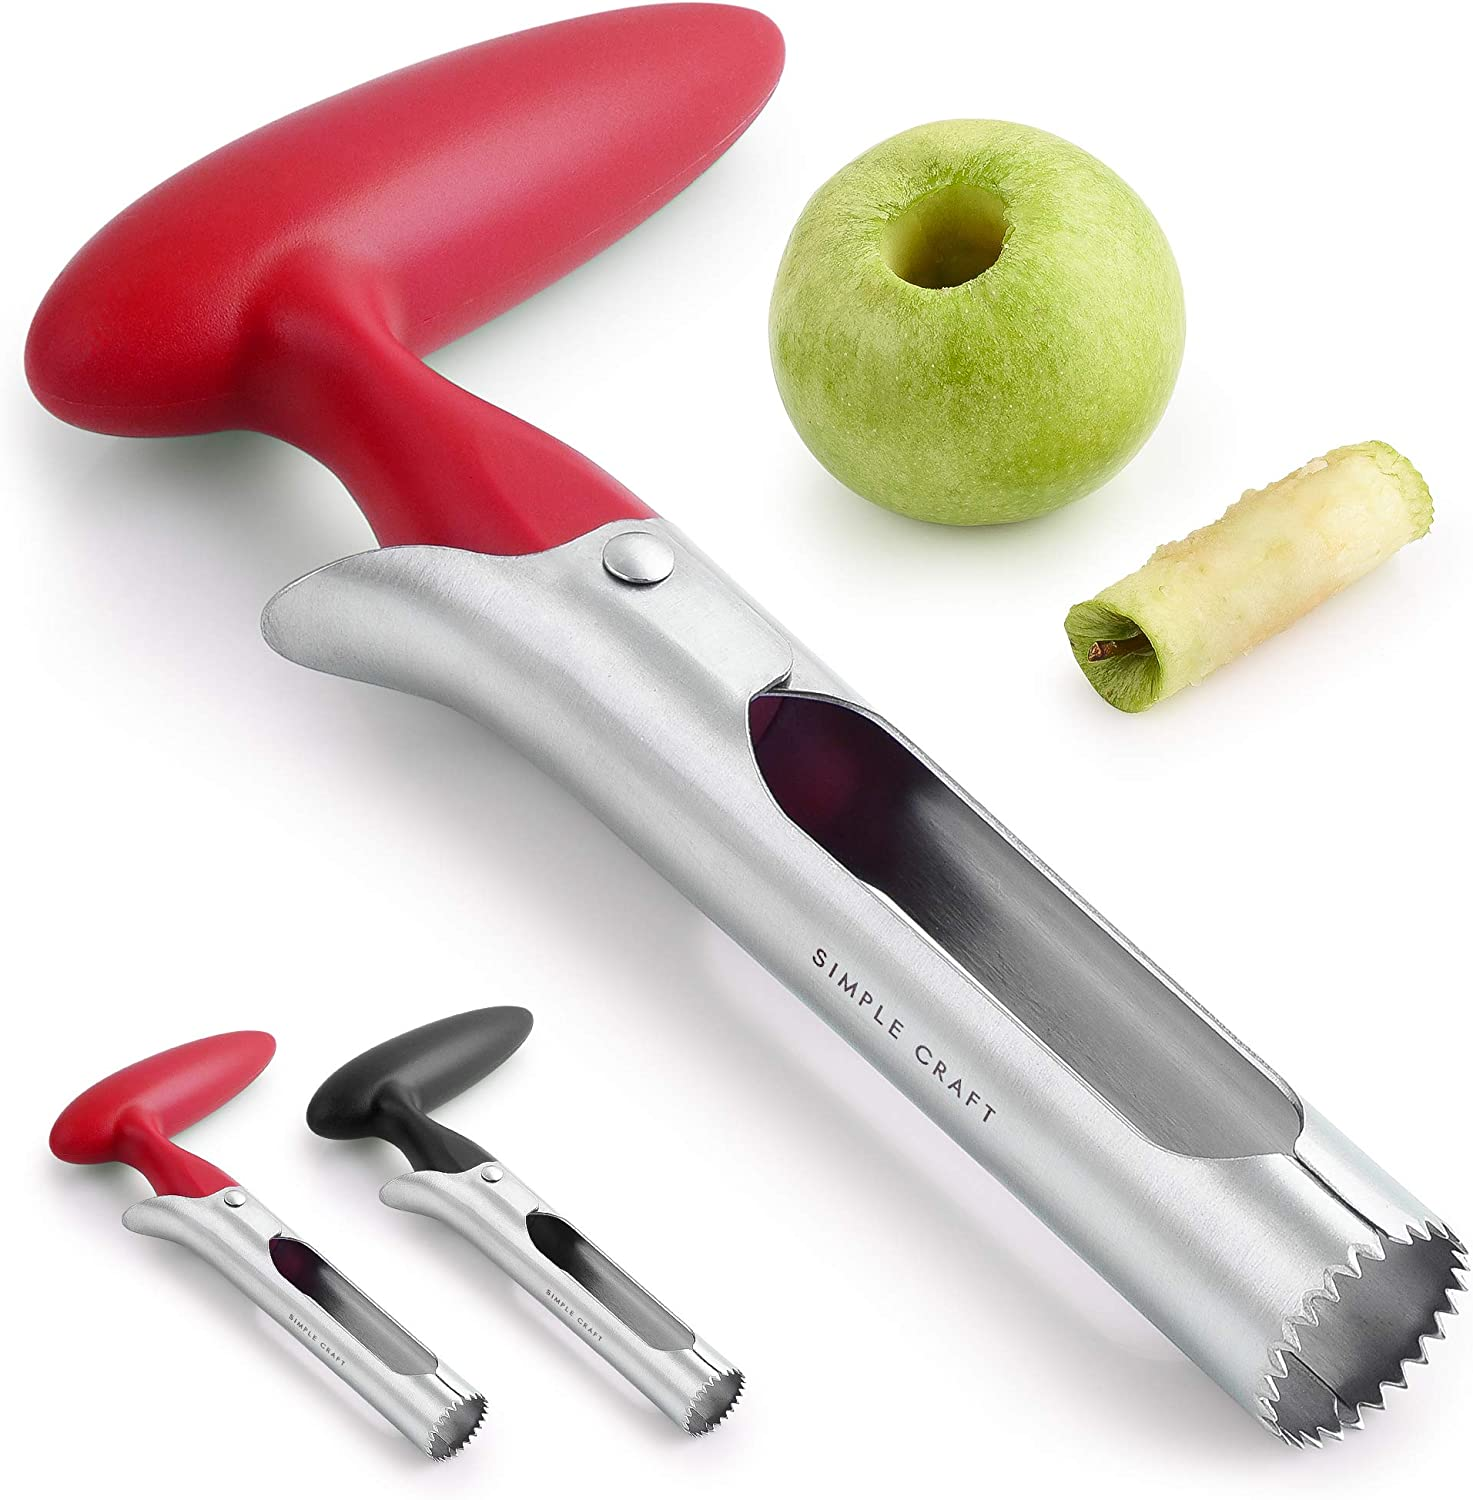 Simple Craft Apple Corer - Premium Stainless Steel Apple Corer Tool For Removing Cores & Pits - Sharp Serrated Core Remover For Apples & Pears (Red)